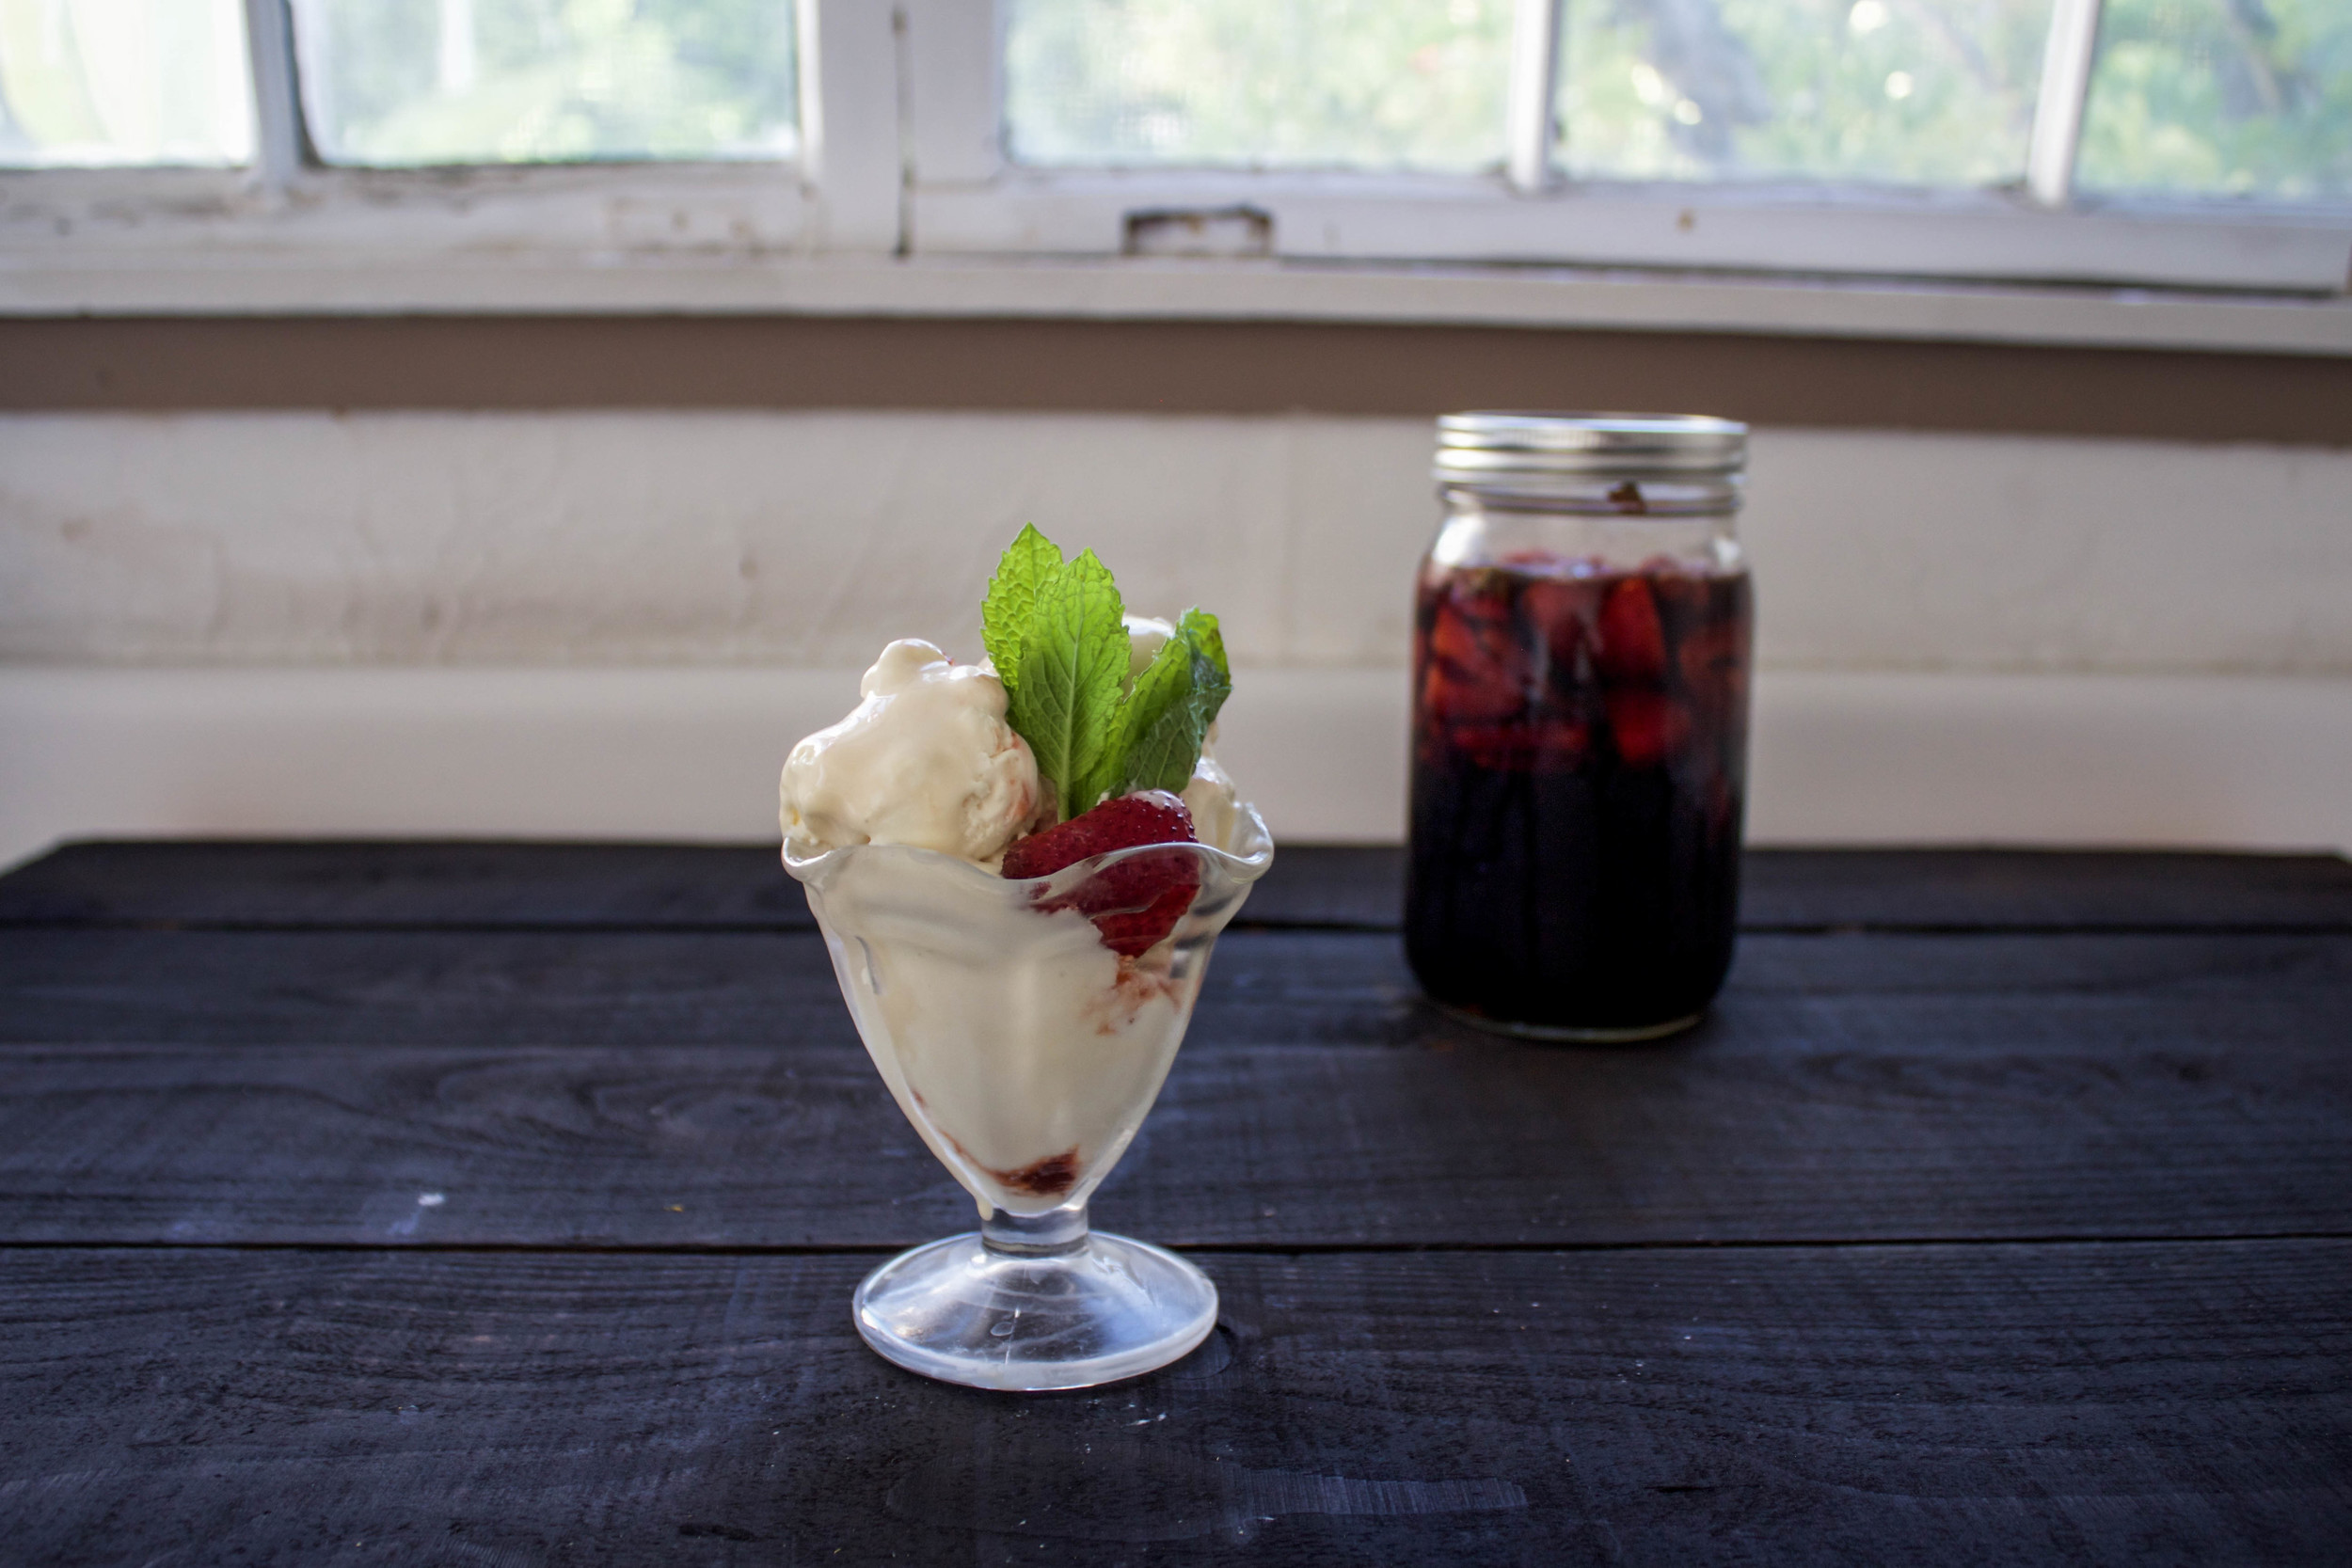 Assemble by putting a few pickled strawberries on a scoop of ice cream, add a sprig of mint.  What might be interesting would be taking some of the brining liquor and concentrating it into a syrup by boiling it down.